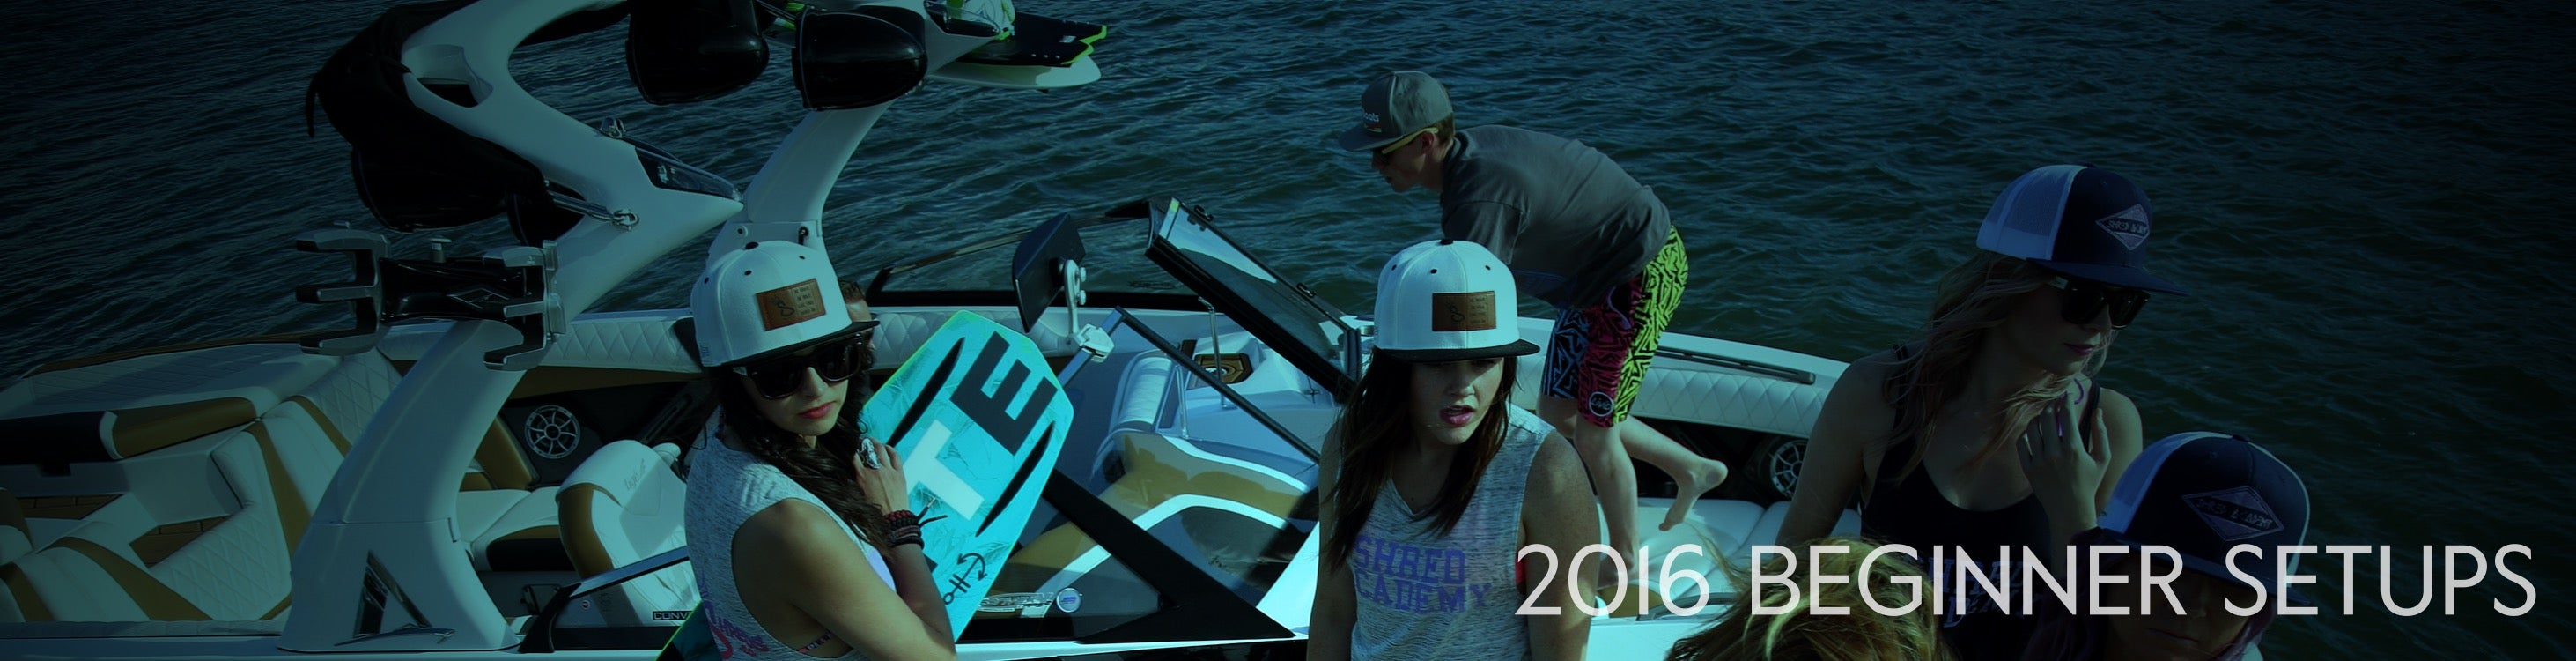 2016 top women's wakeboard setups for beginners